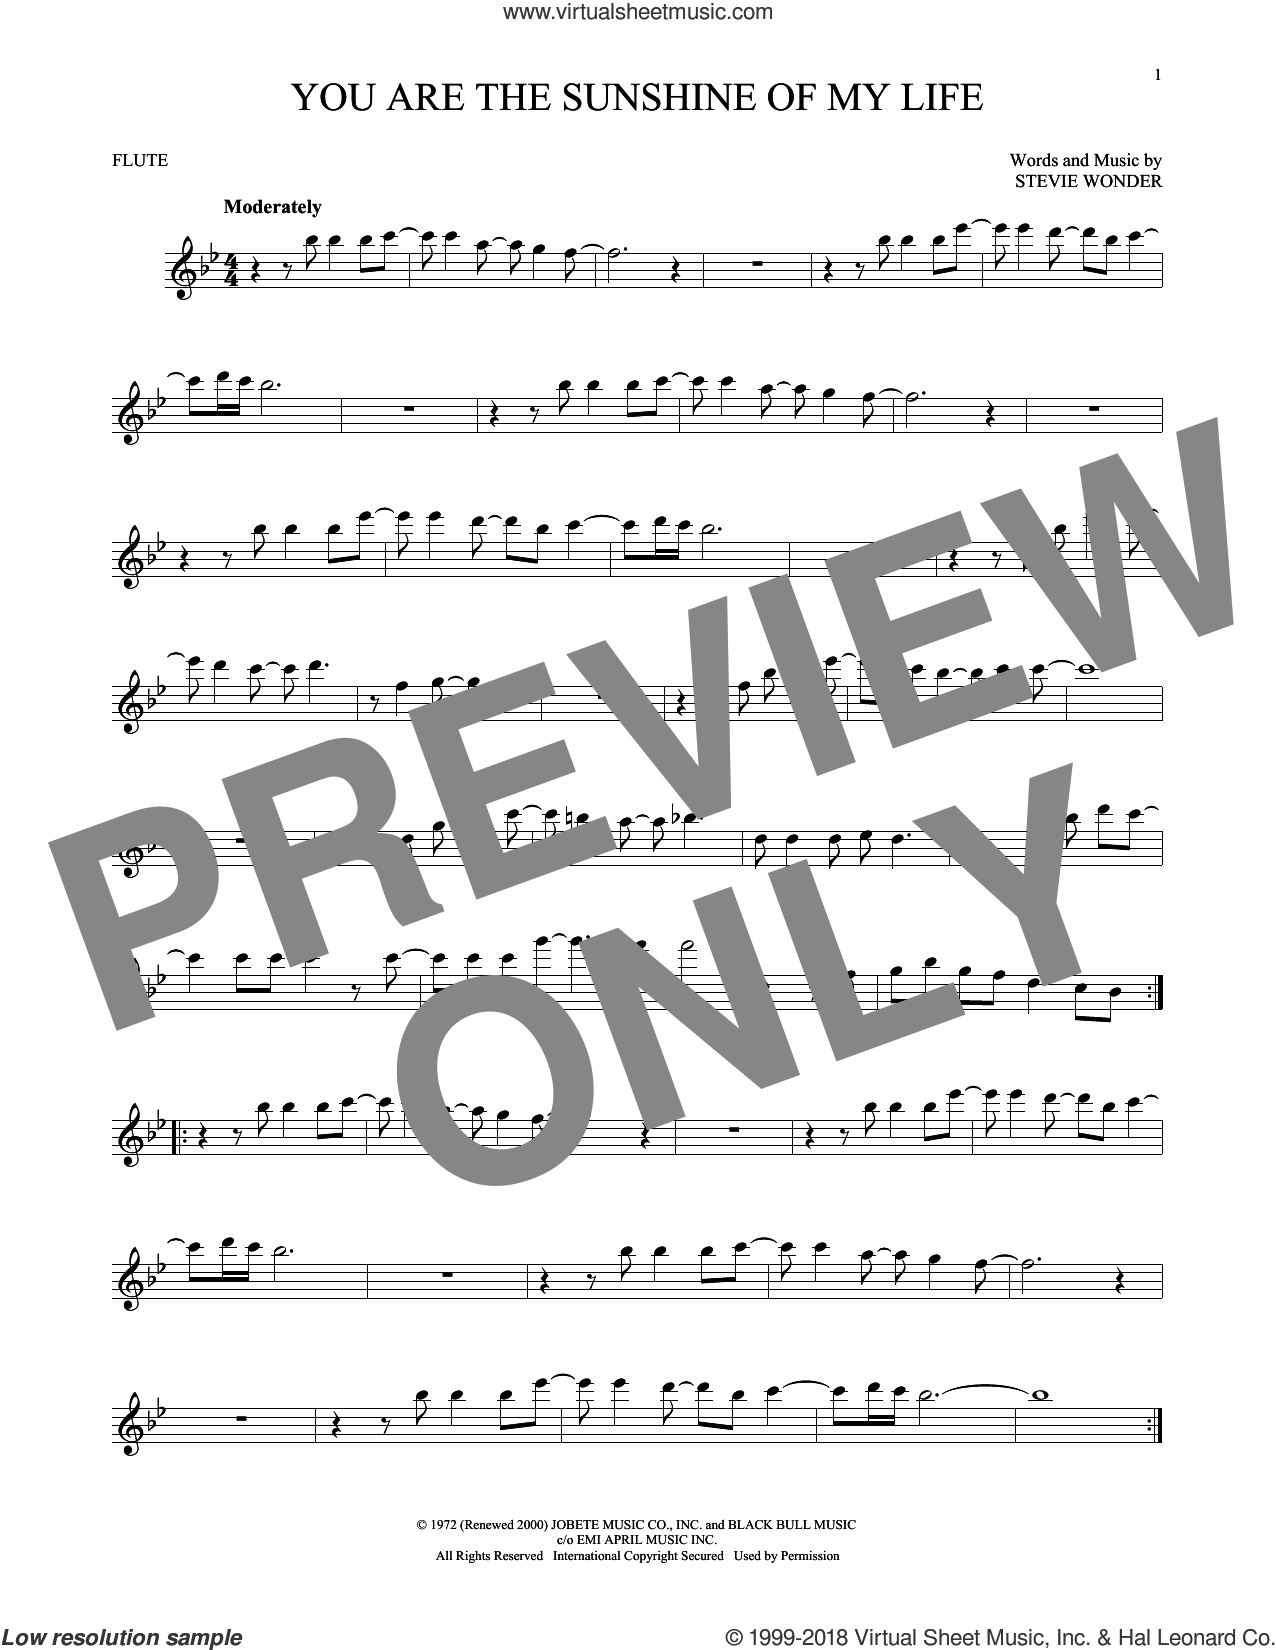 You Are The Sunshine Of My Life sheet music for flute solo by Stevie Wonder, intermediate skill level